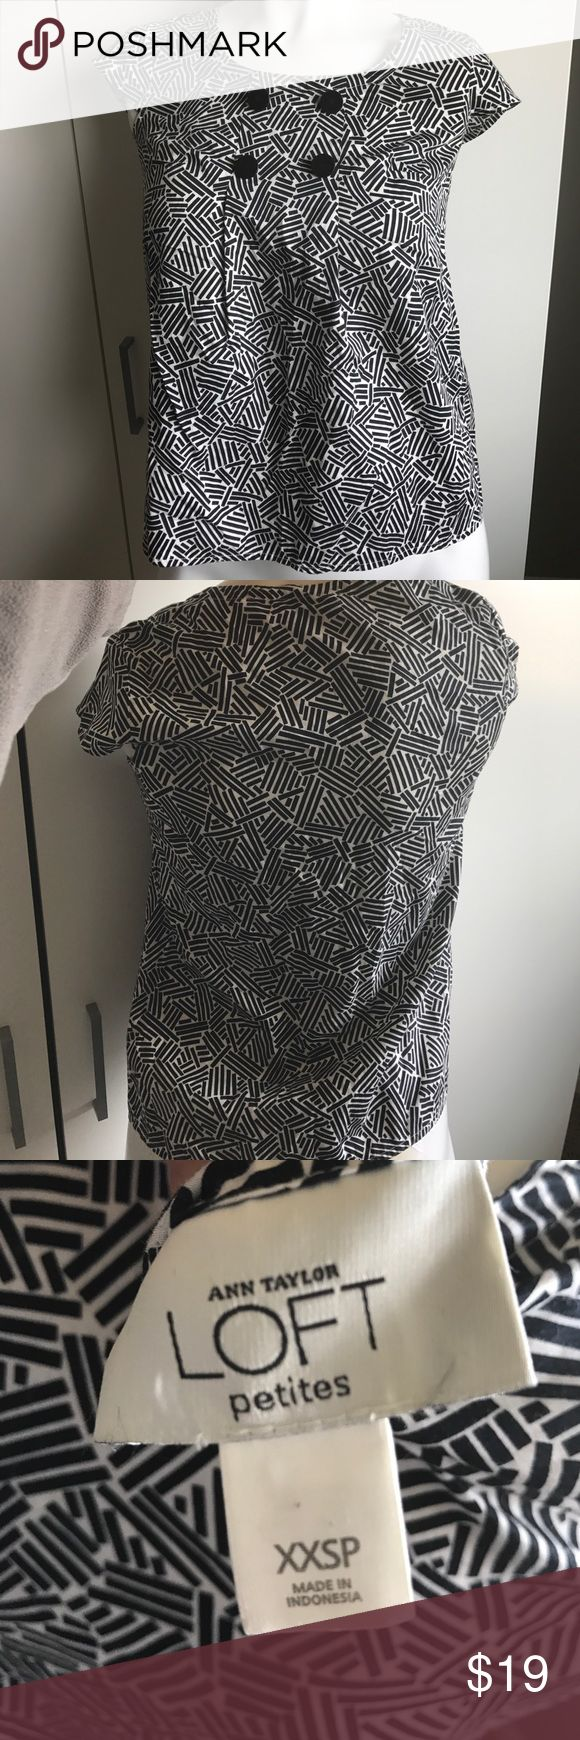 """Ann Taylor Loft Petite XXS black white blouse top Ann Taylor Loft XXS Petite black and white patterned blouse top. 4 decorative black buttons with scoop neck and cap sleeves. EUC  ALL ITEMS COME FROM A SMOKE FREE HOME.  Measurements: Shoulder to shoulder 13"""" Shoulder to hem 22""""   Materials:  100% cotton  Bid with confidence as we have a perfect 100% feedback rating (on other online sites) dating back to 1999. All questions will be answered within an eight hour timeframe. Your item will…"""